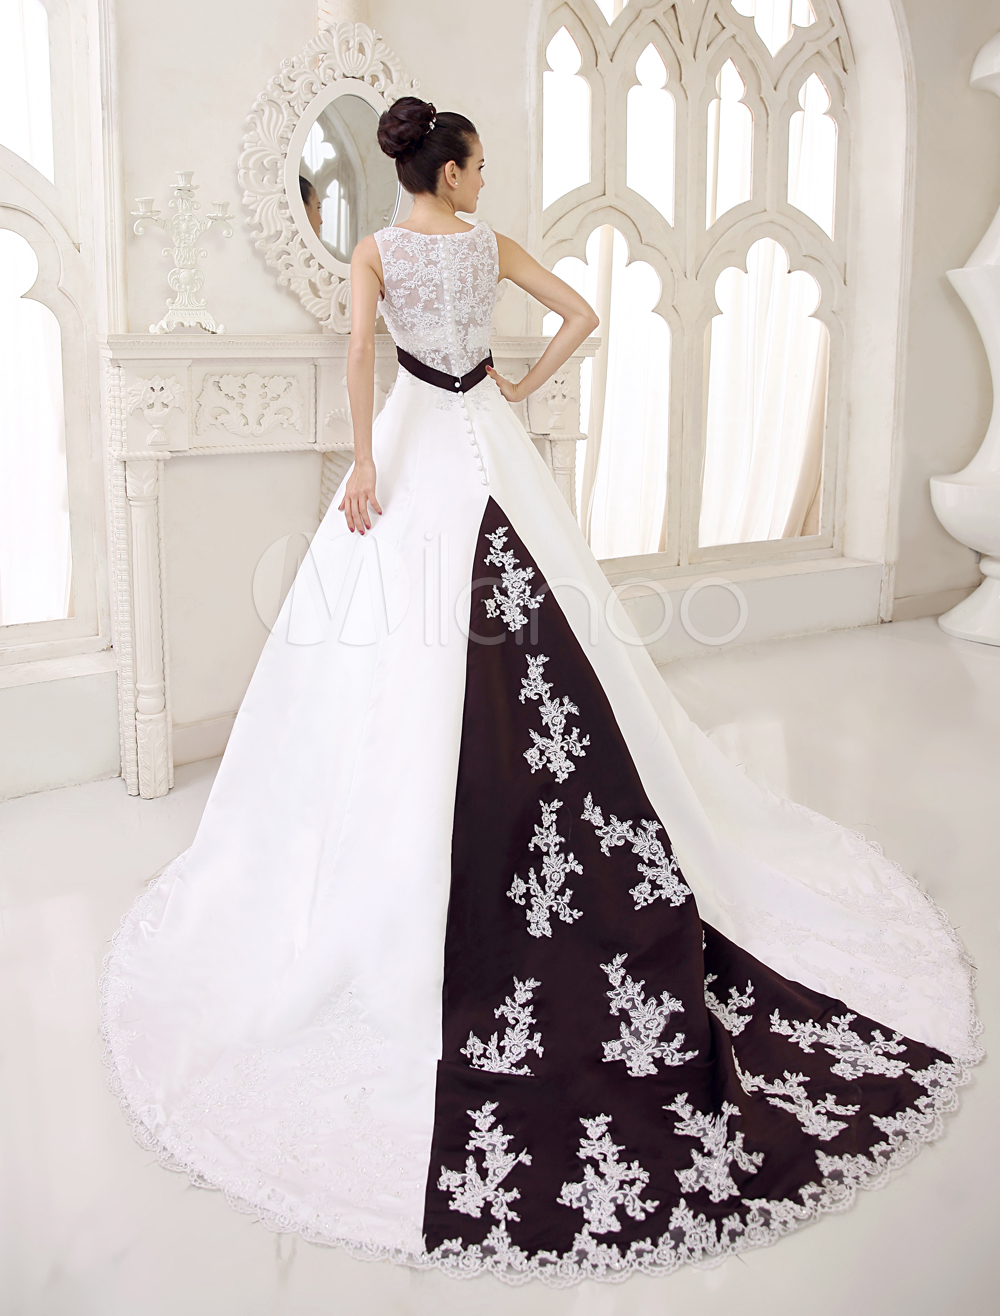 China Wholesale Dresses - A-line V-Neck Empire Waist Sash Beading Embroidery Lace Satin Wedding Dress